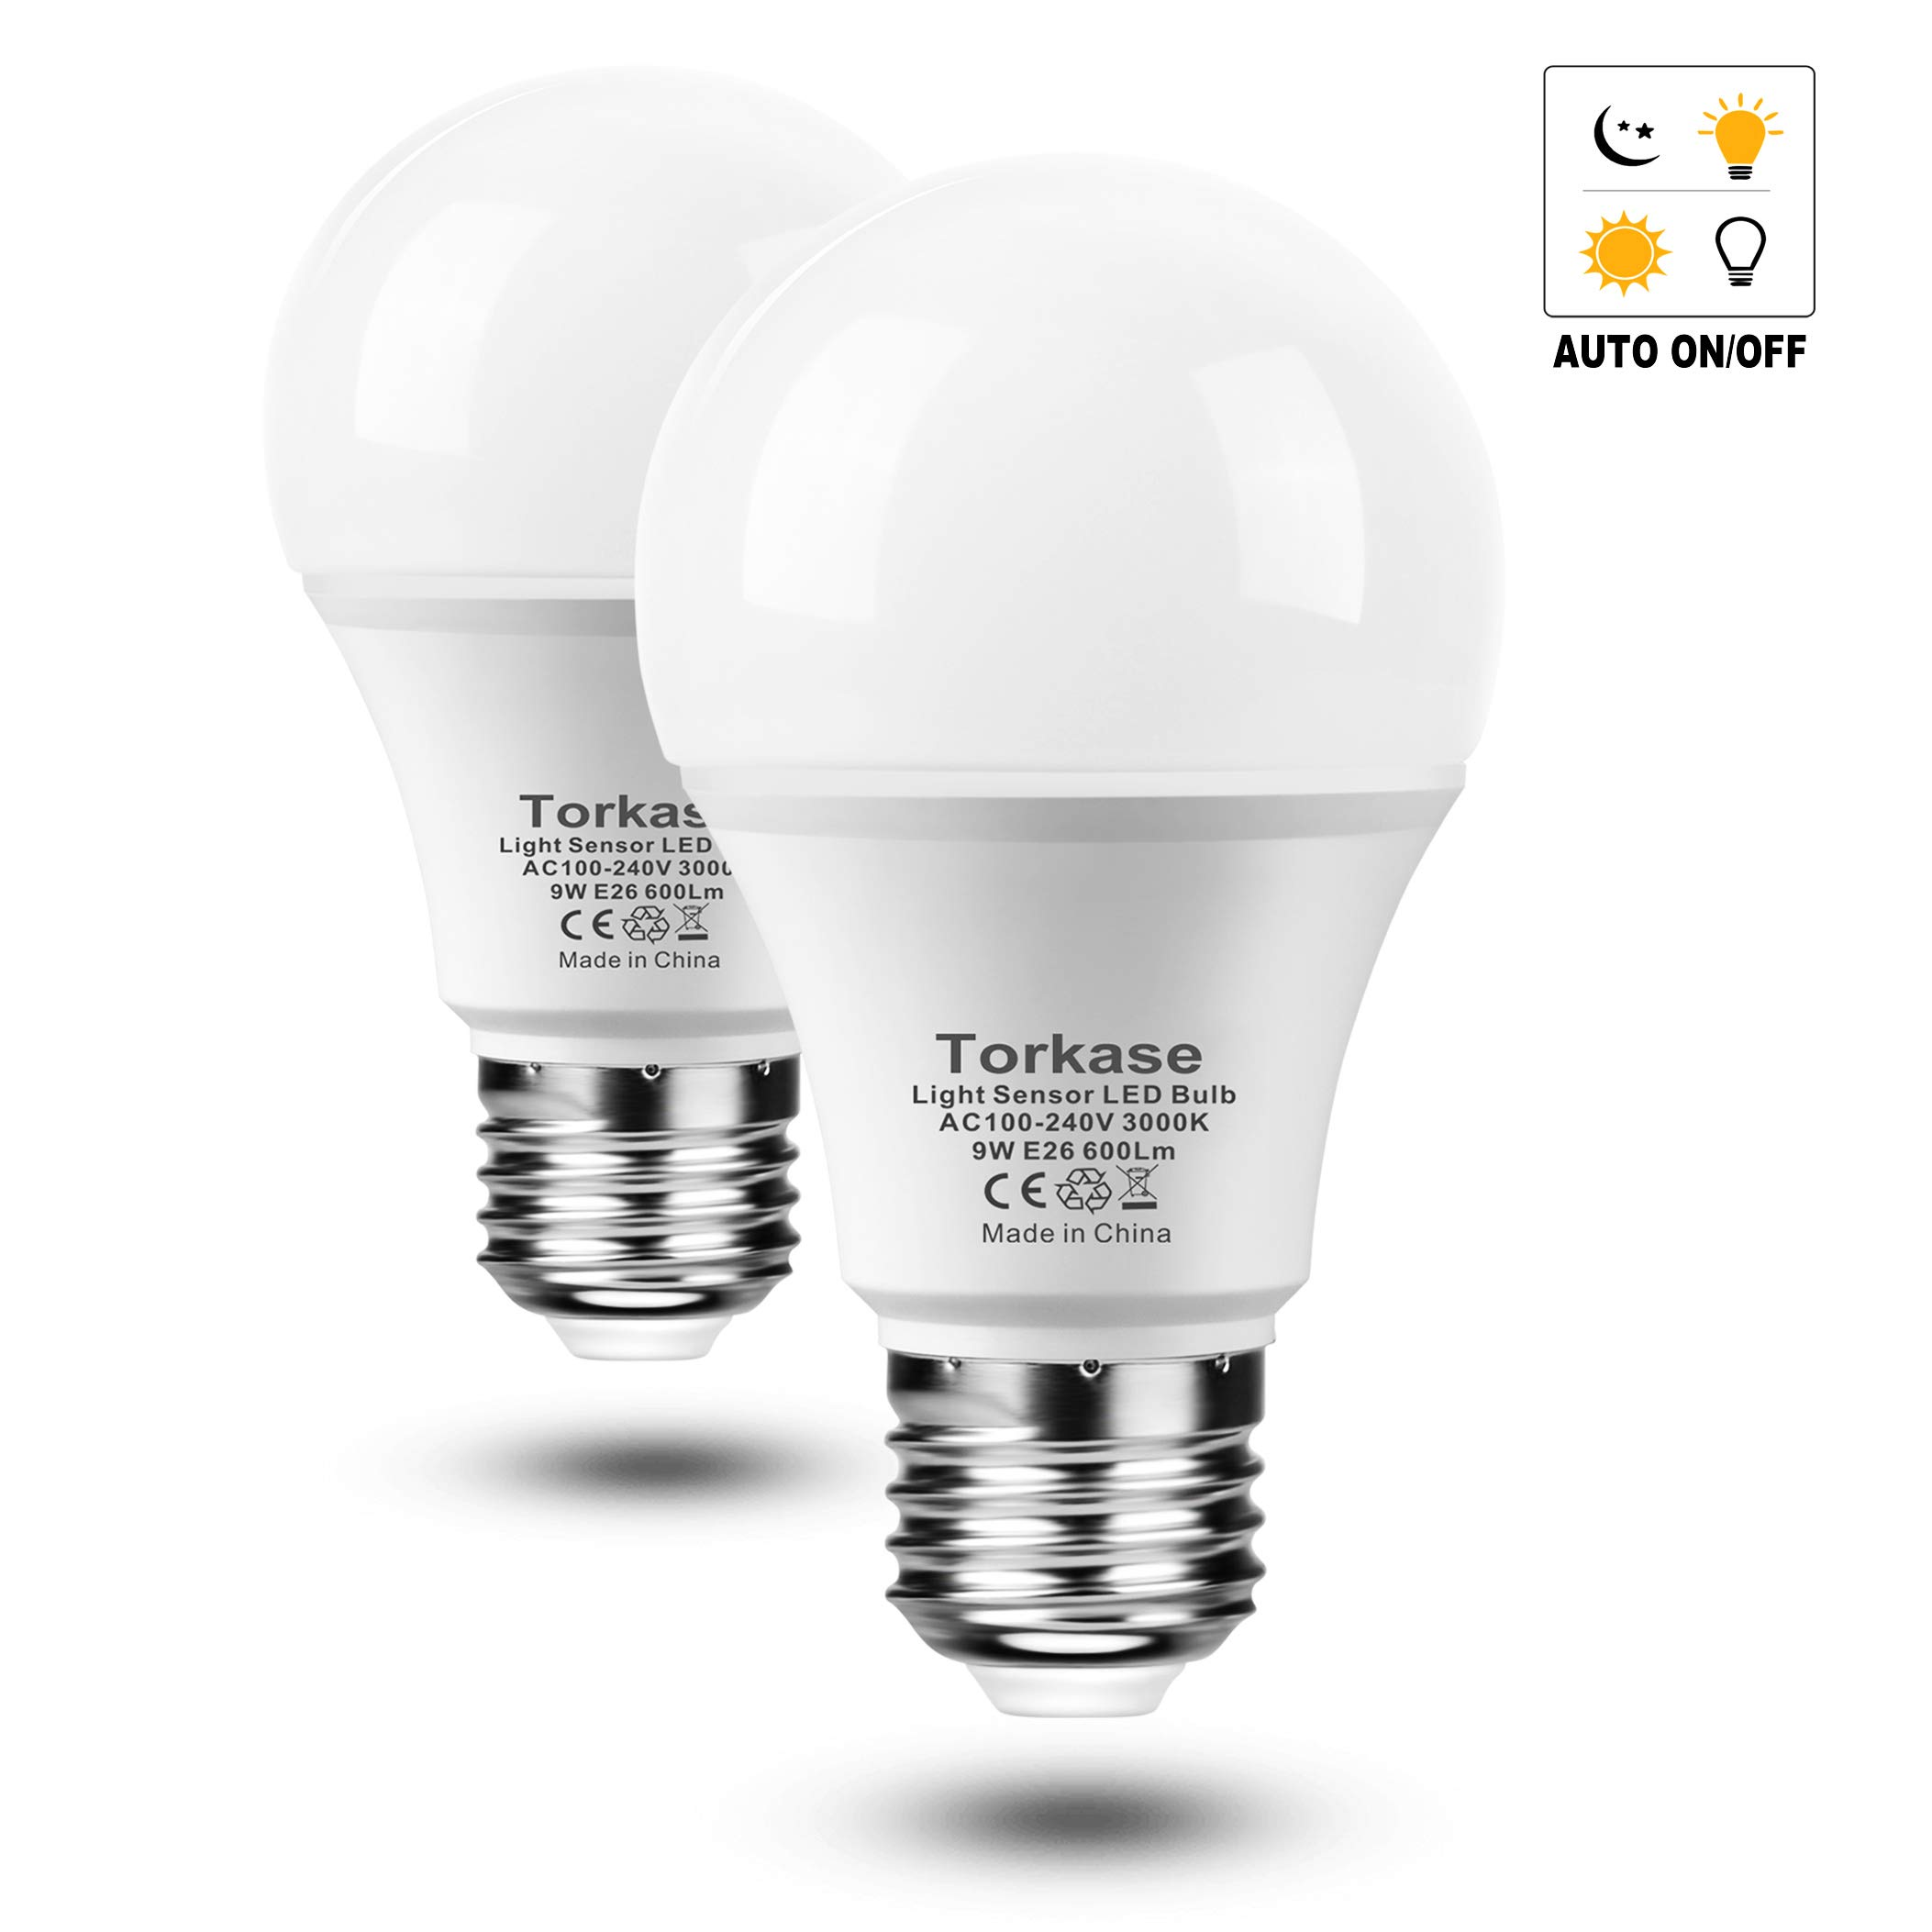 Torkase Dusk to Dawn Light Bulb, Plug and Play, Auto On/Off, Built in Photocell Detector, 85% Energy Saving, 9W/A19/E26/120V, Indoor/Outdoor Yard Porch Patio Garage Warehouse (Warm White, 2 Pack)